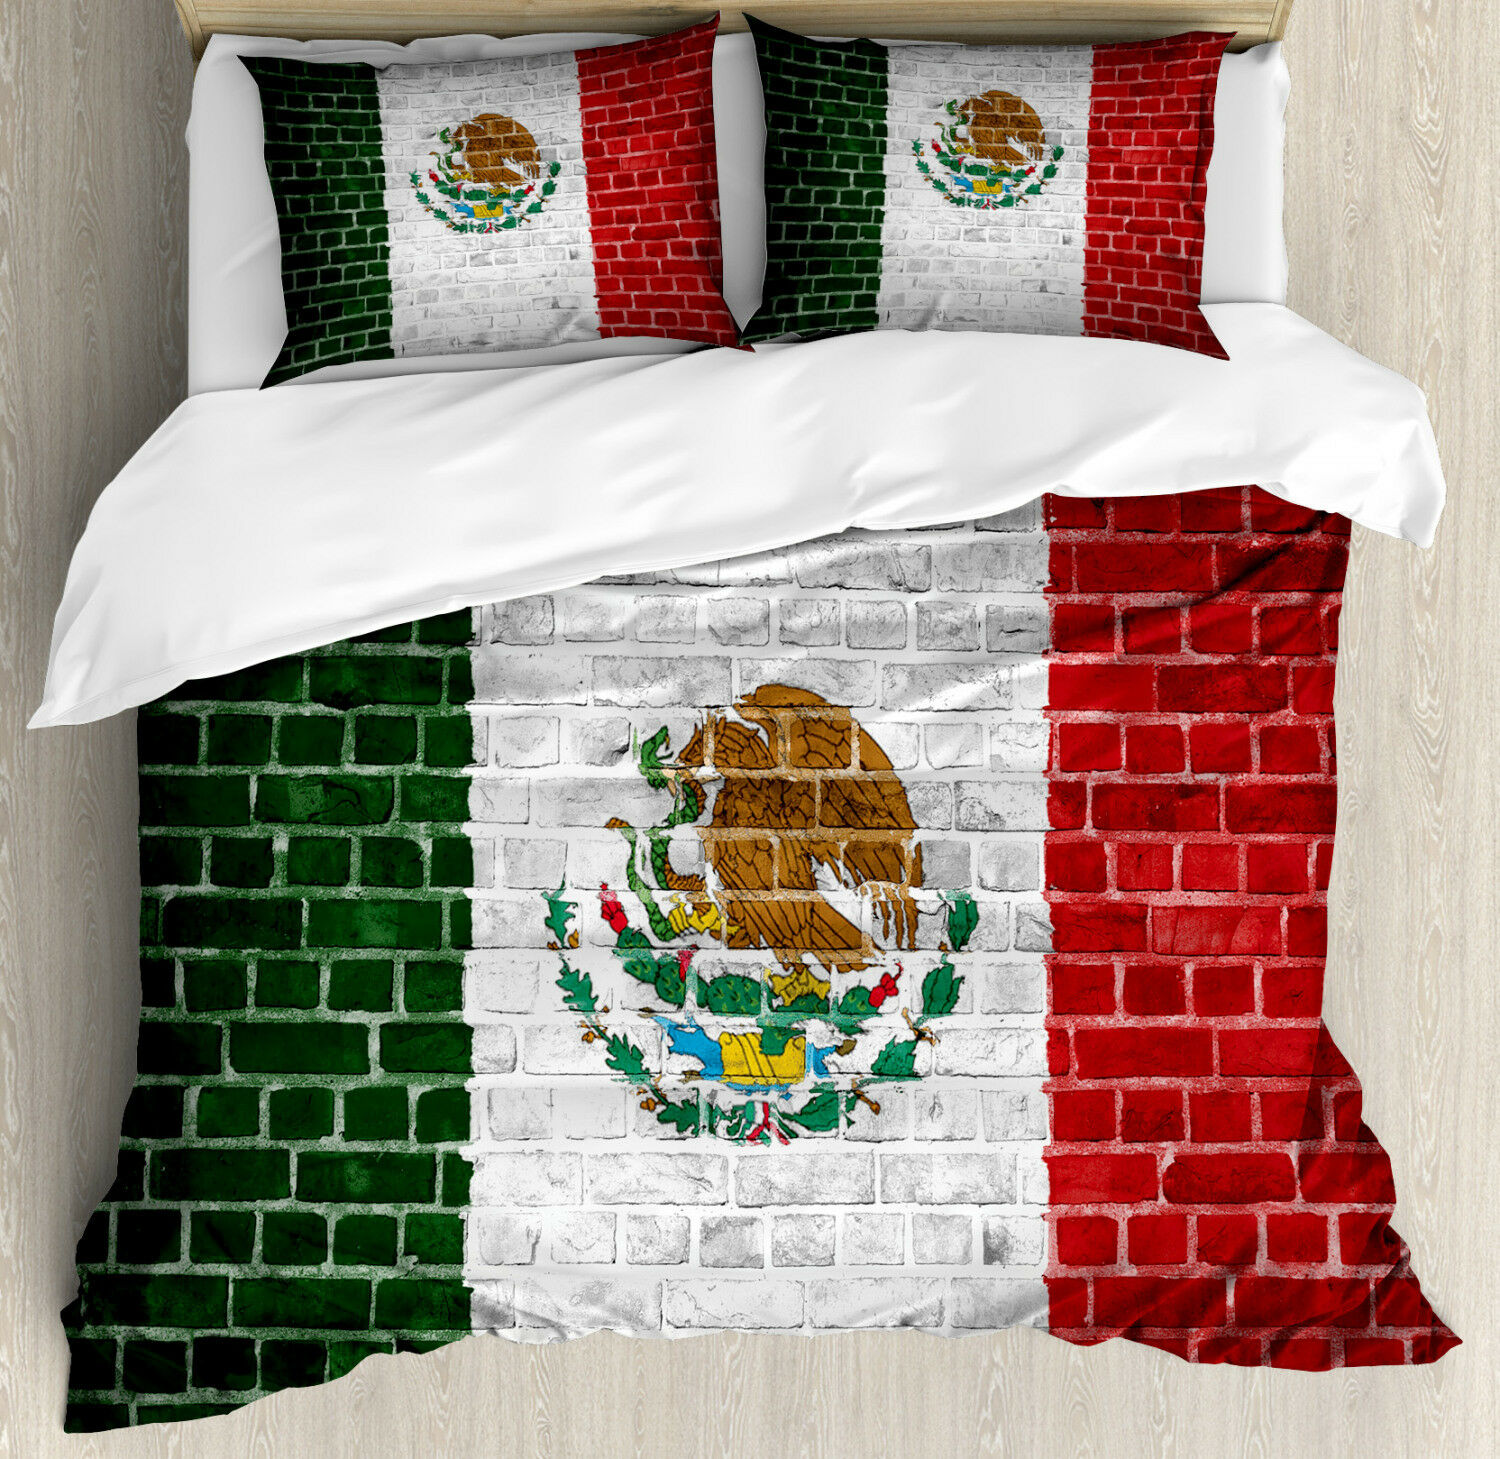 Mexica Duvet Cover Set with Pillow Shams Latina Country Flag Print